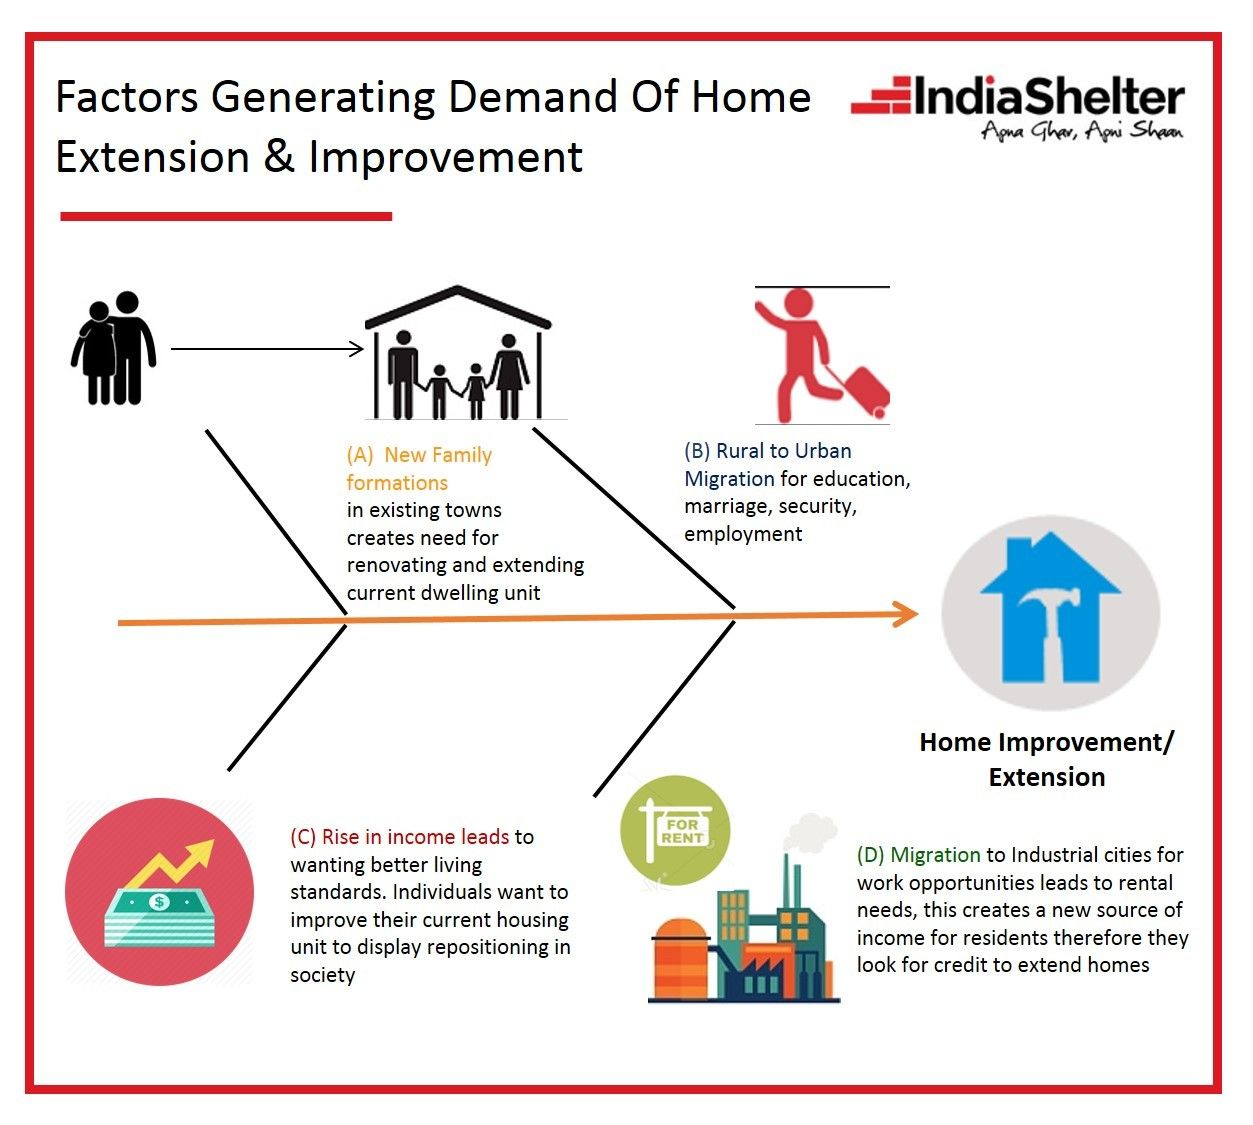 India Shelter makes the new home purchase process quick